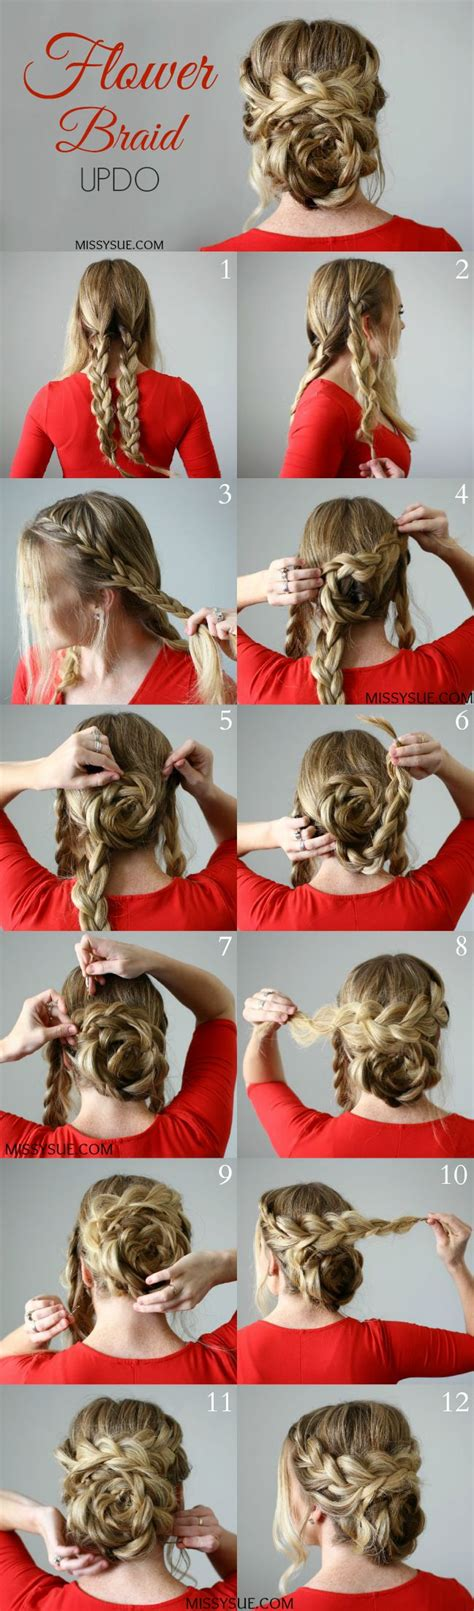 Wedding Hair Braid Tutorial by 1361 Best Images About Hair Tutorials On